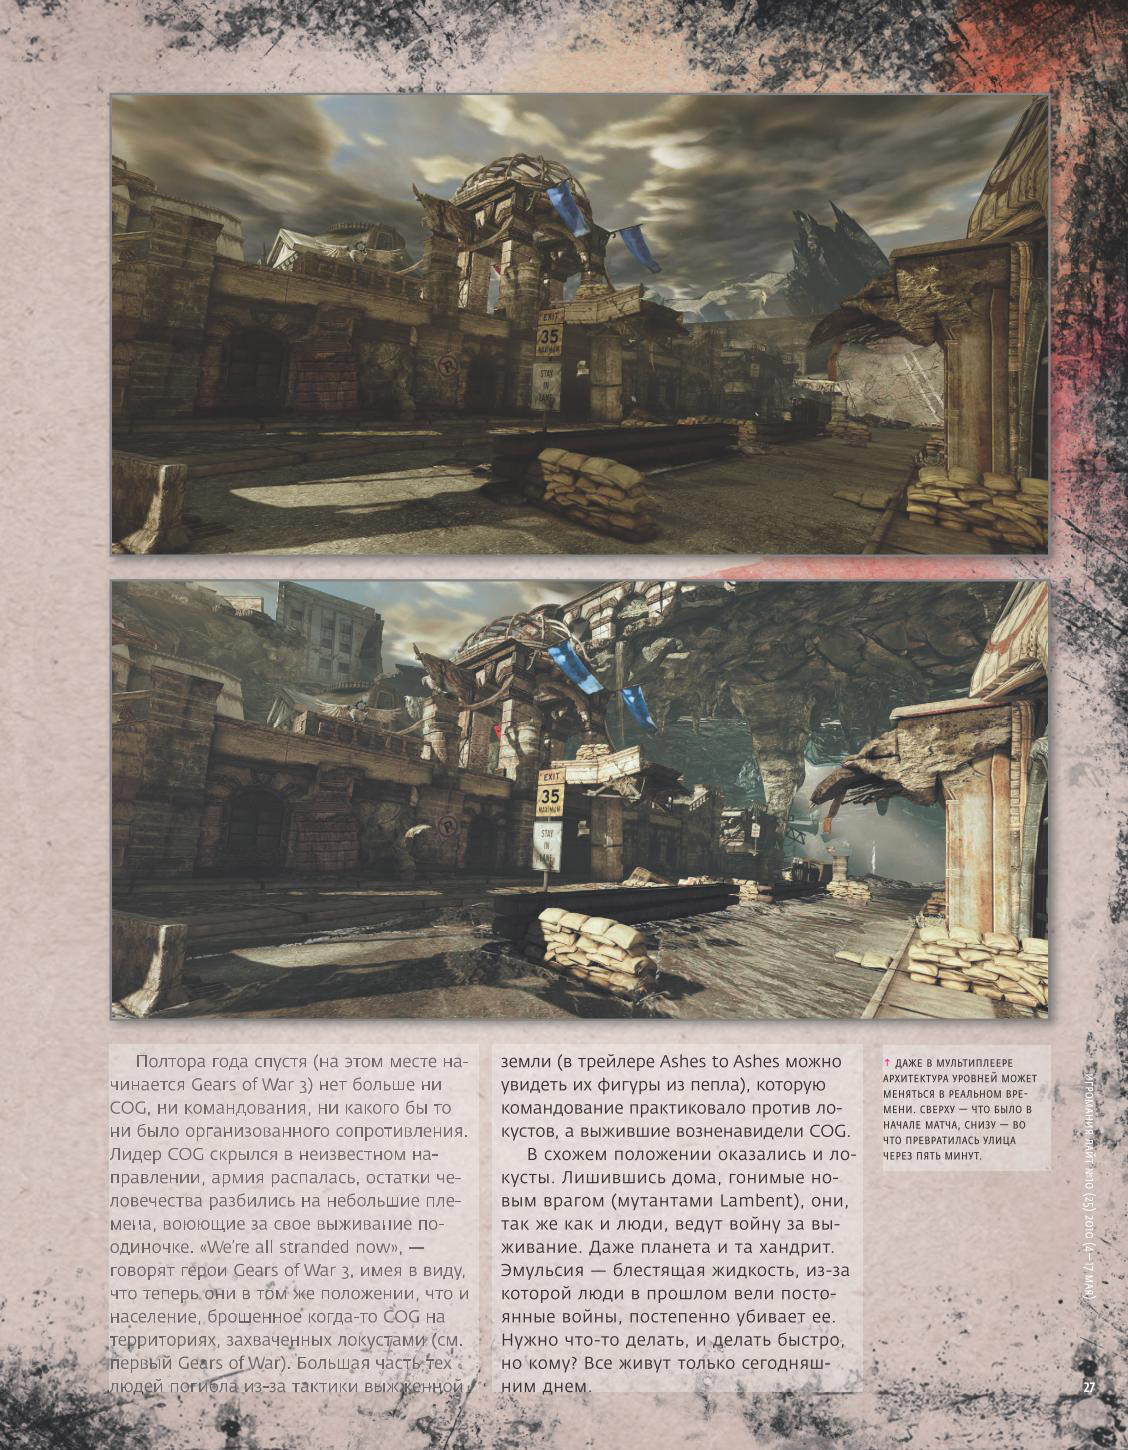 gears of war 3 scan4